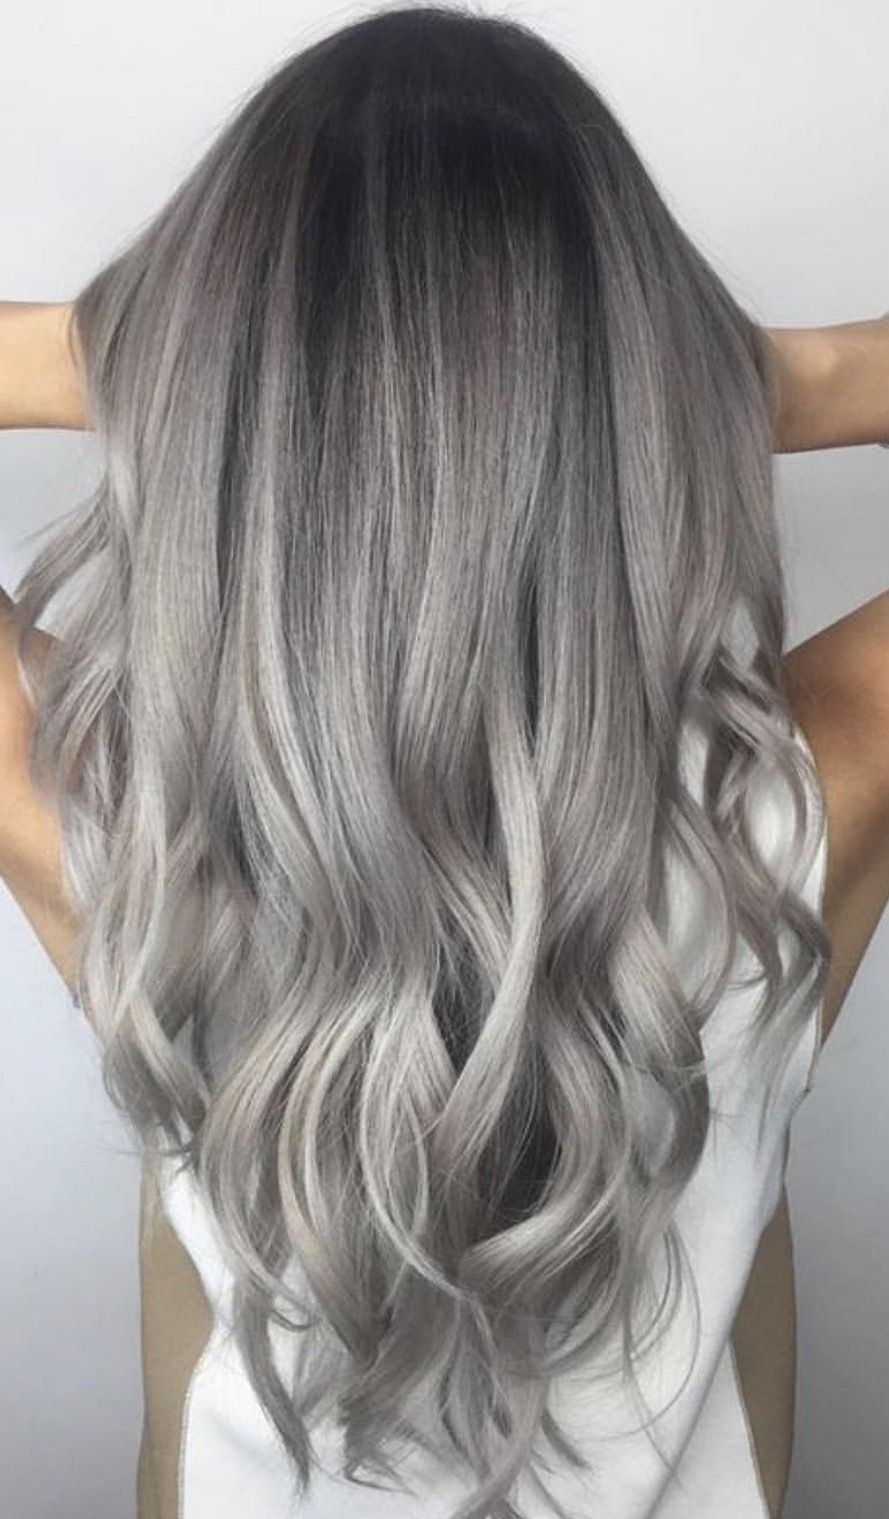 Pin by Lae on Rock The Locks   Hair styles, Bold hair color, Long ...